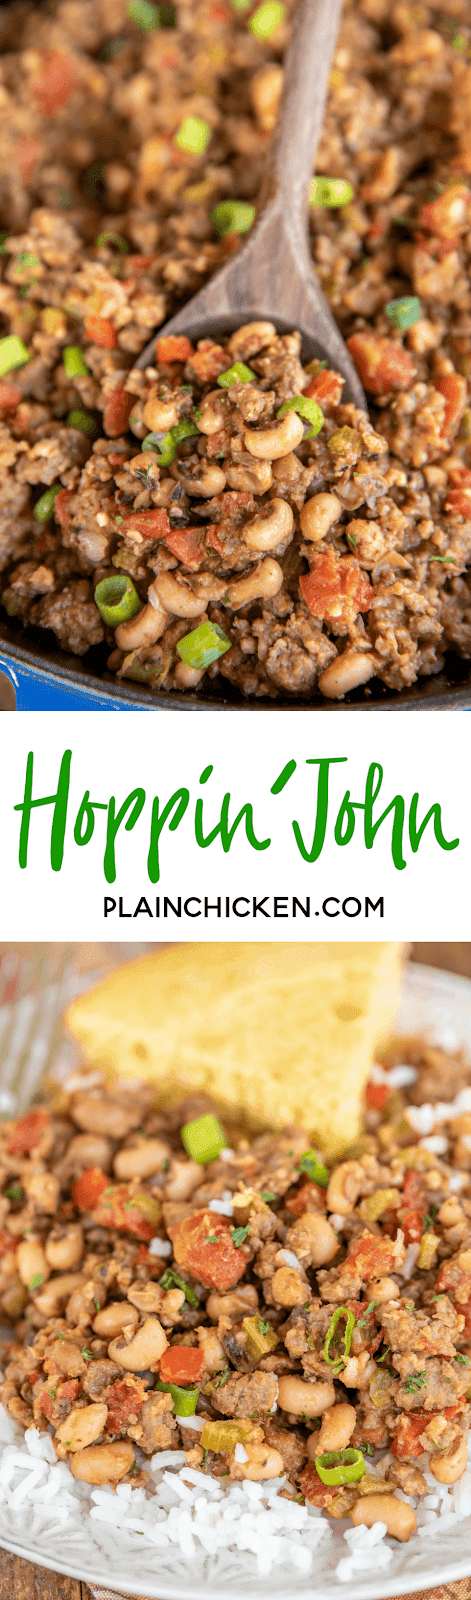 Hoppin' John a New Year's Tradition! Southern legend has